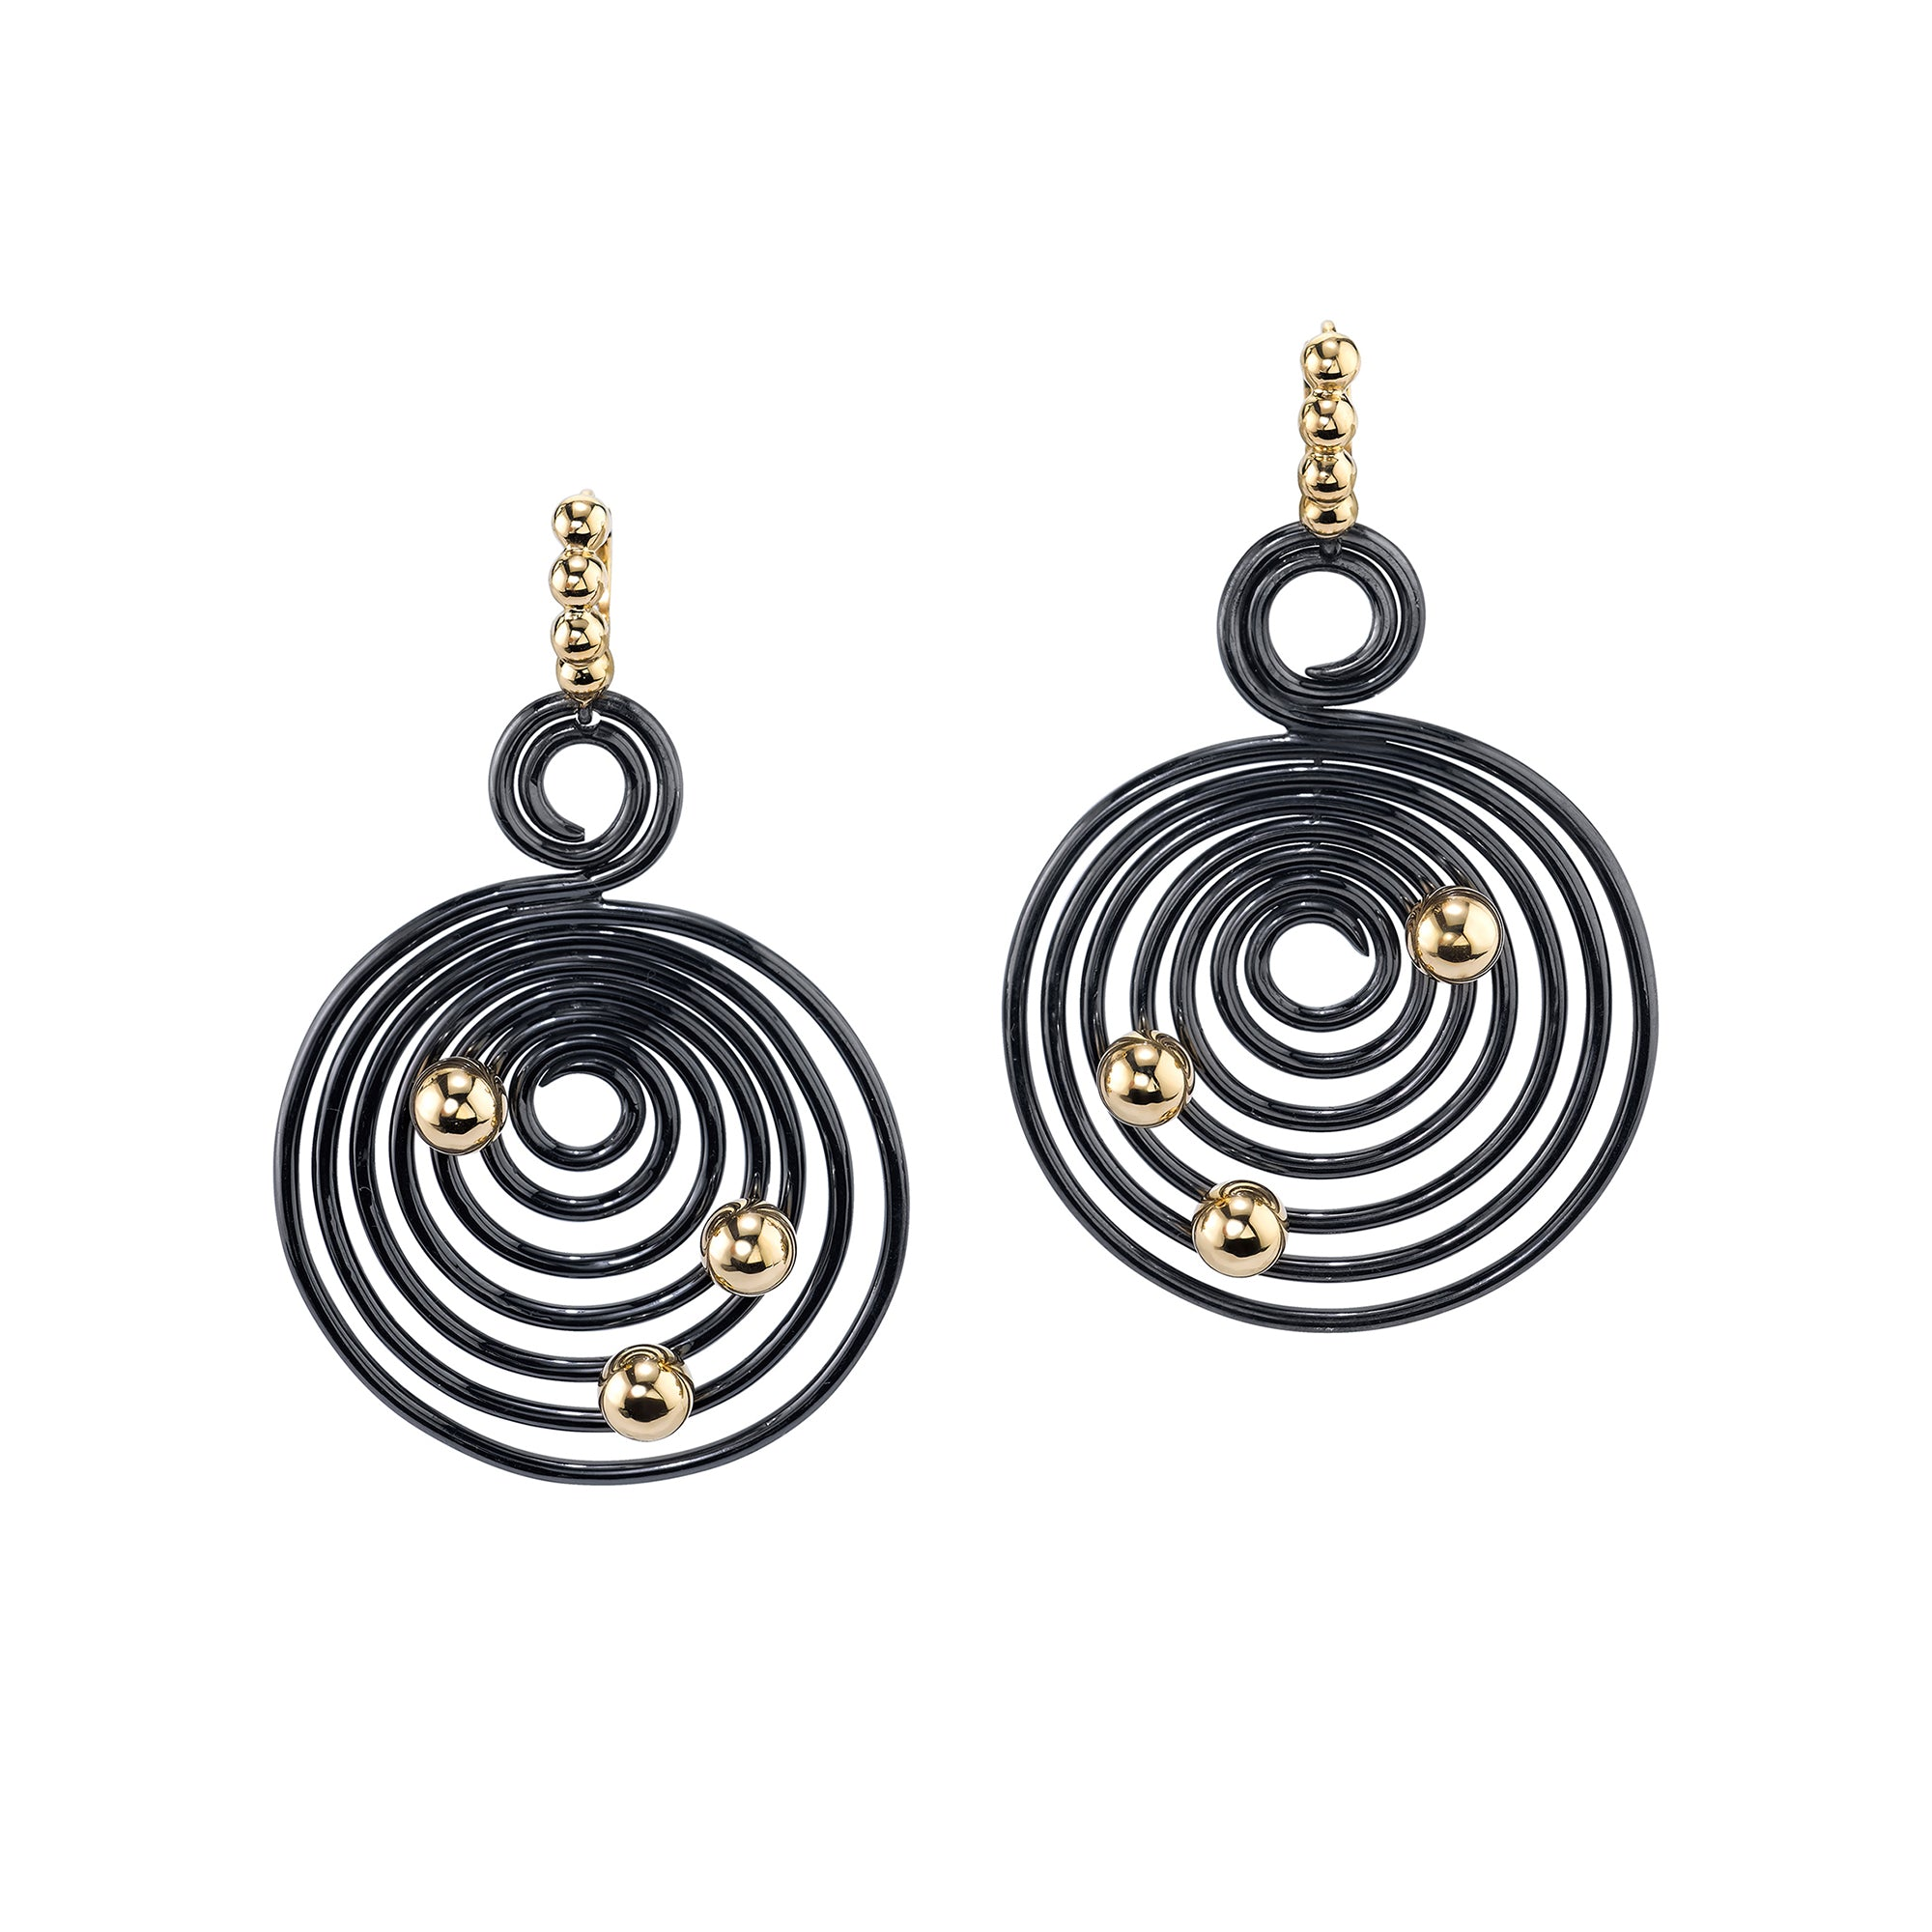 Eon Helics Earrings by VRAM for Broken English Jewelry